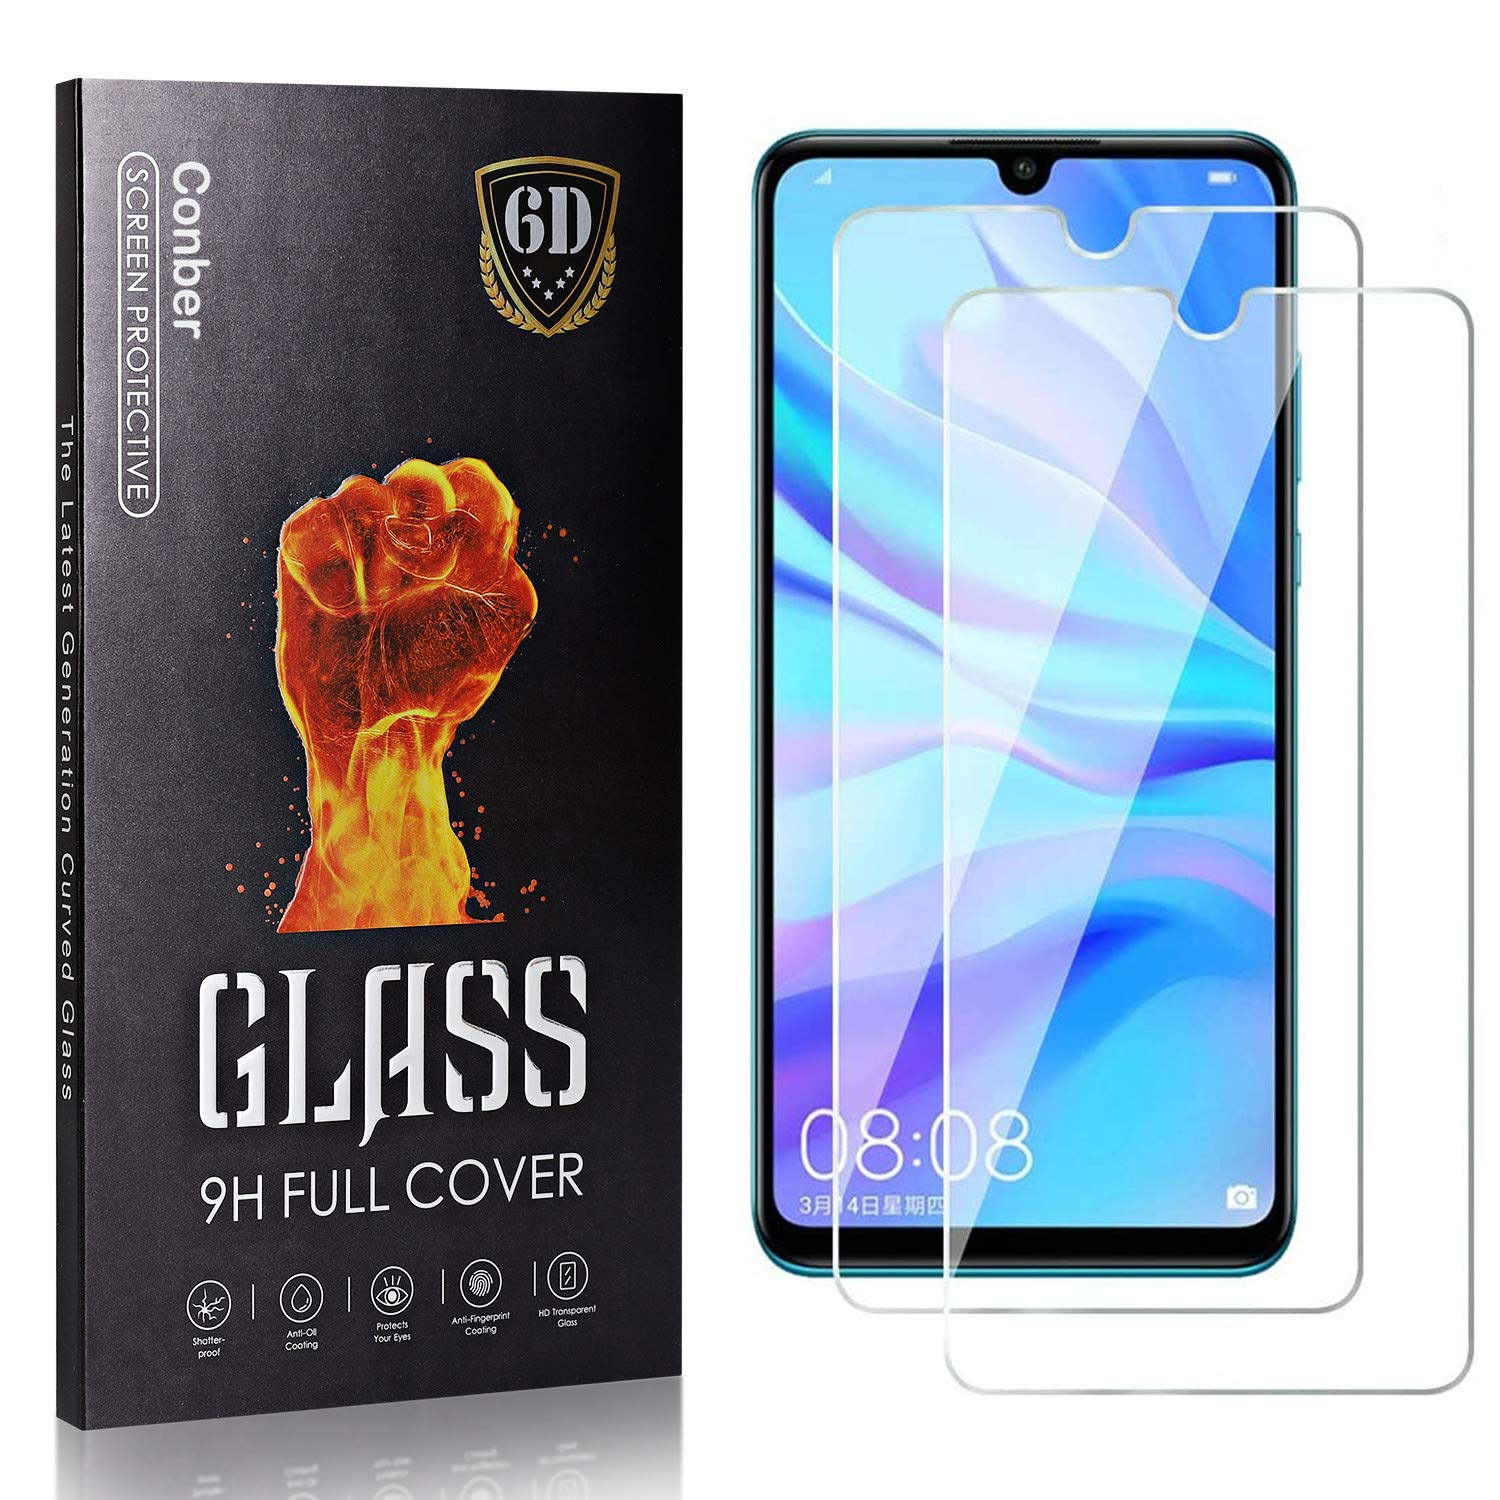 Luxury goods Conber 2 Pack Screen Protector Huawei 10S discount for Tempered Enjoy